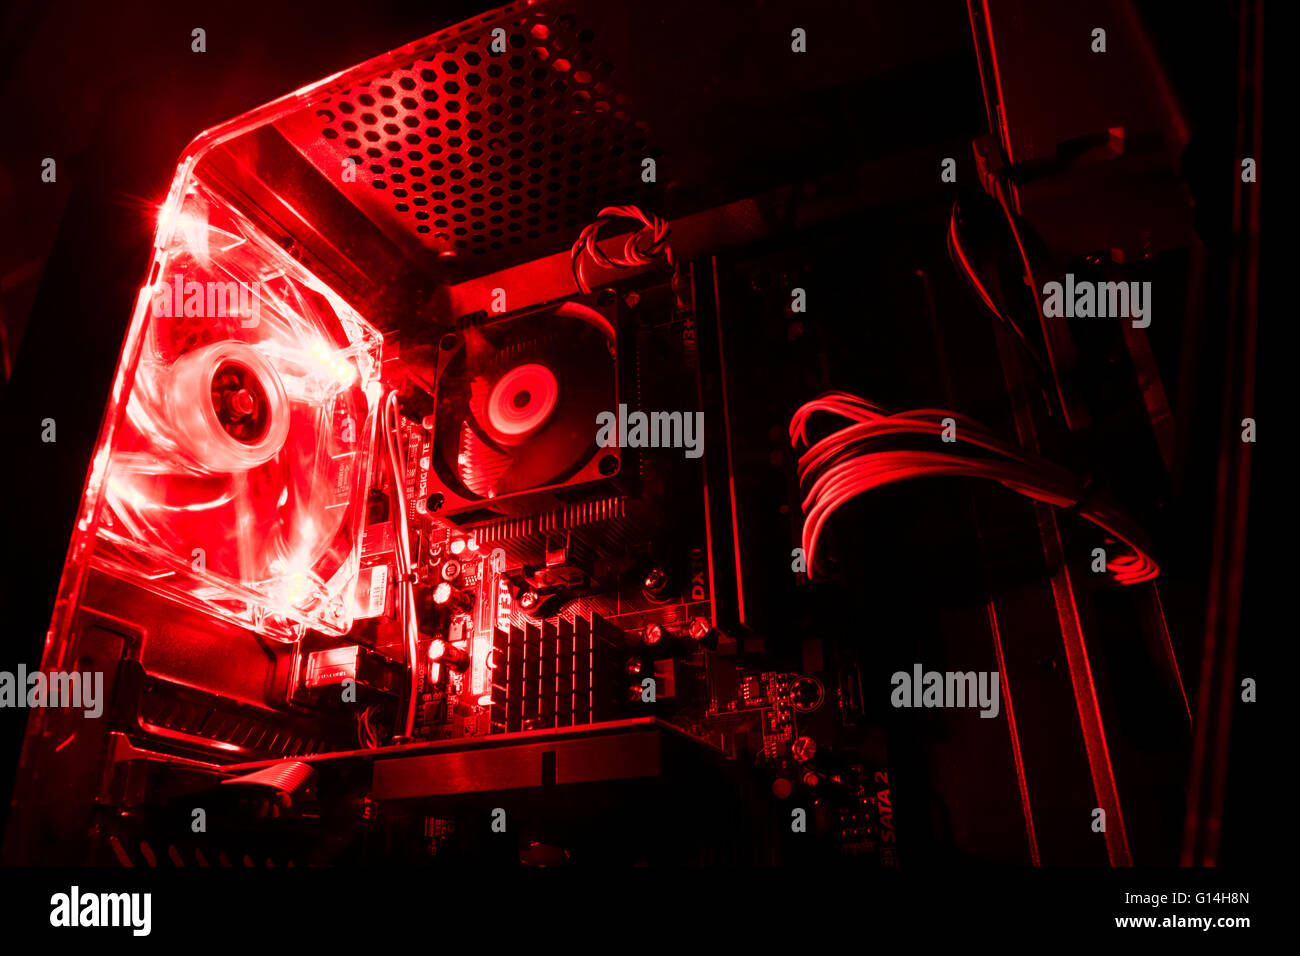 Digital Circuits Stock Photos Images Alamy Analog And Are Made From Parts Cyberpowerpc Image